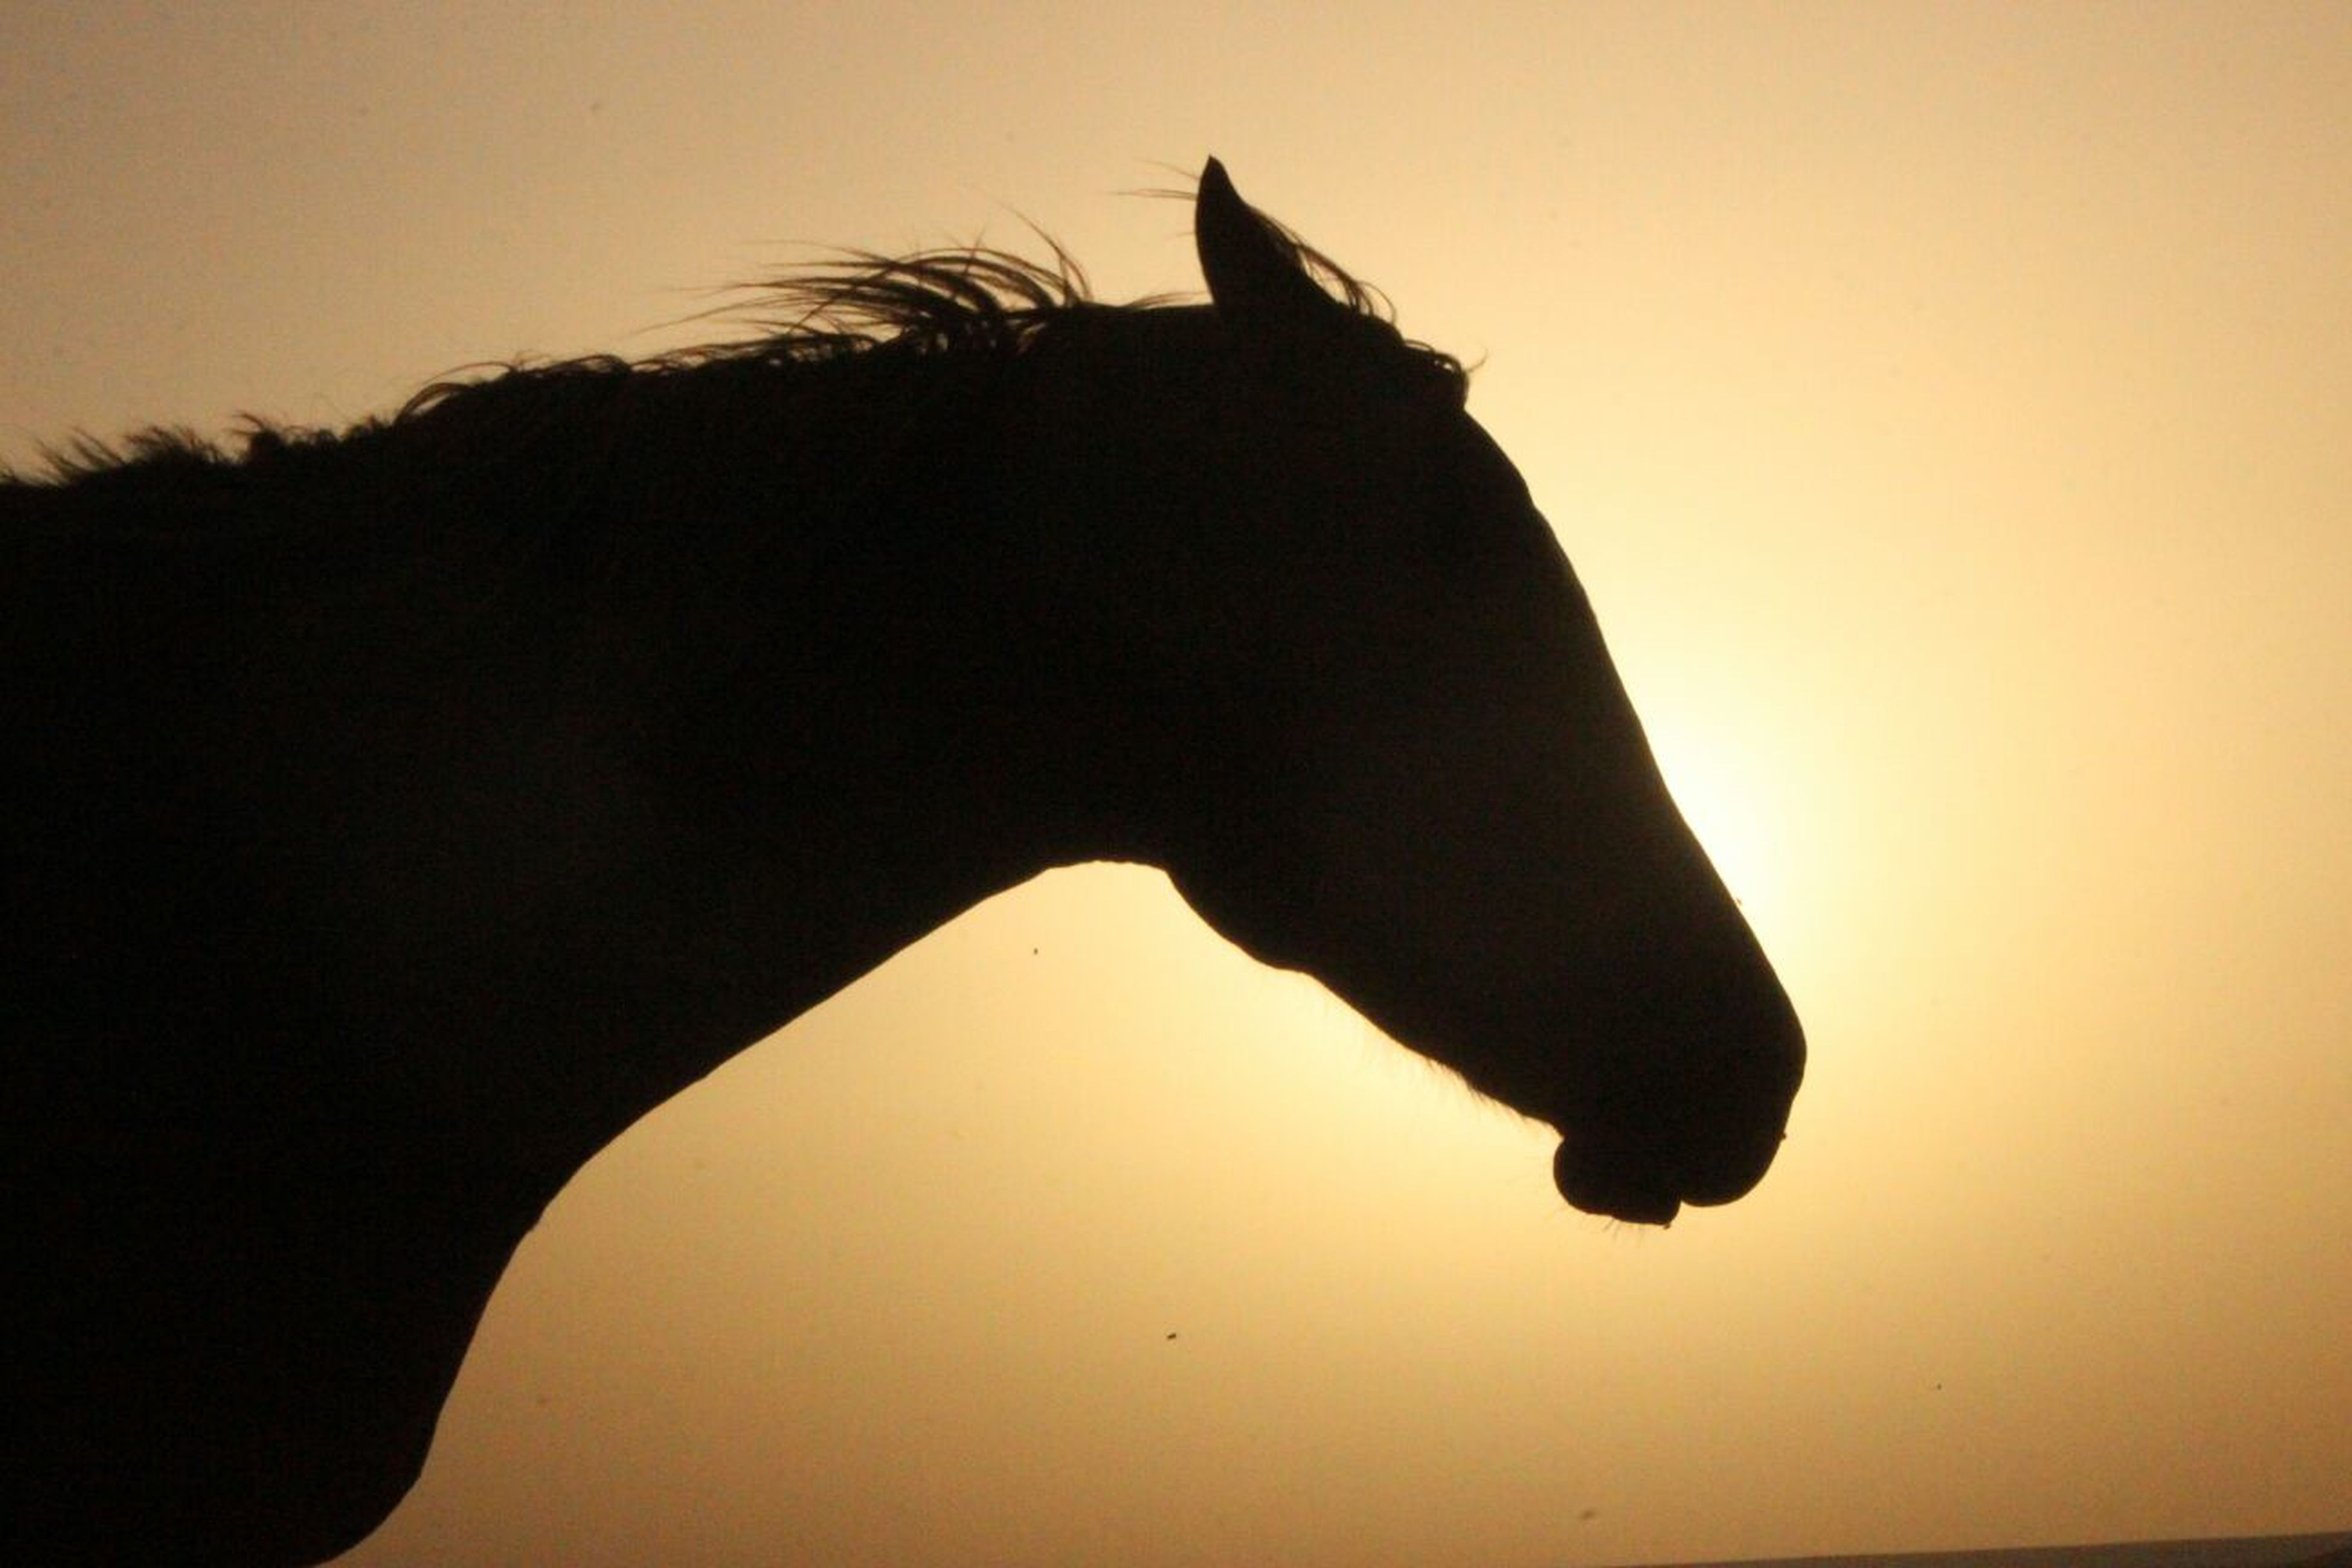 sunset, animal themes, one animal, silhouette, domestic animals, clear sky, mammal, orange color, one person, horse, nature, sky, wildlife, sun, side view, animals in the wild, pets, beauty in nature, bird, standing